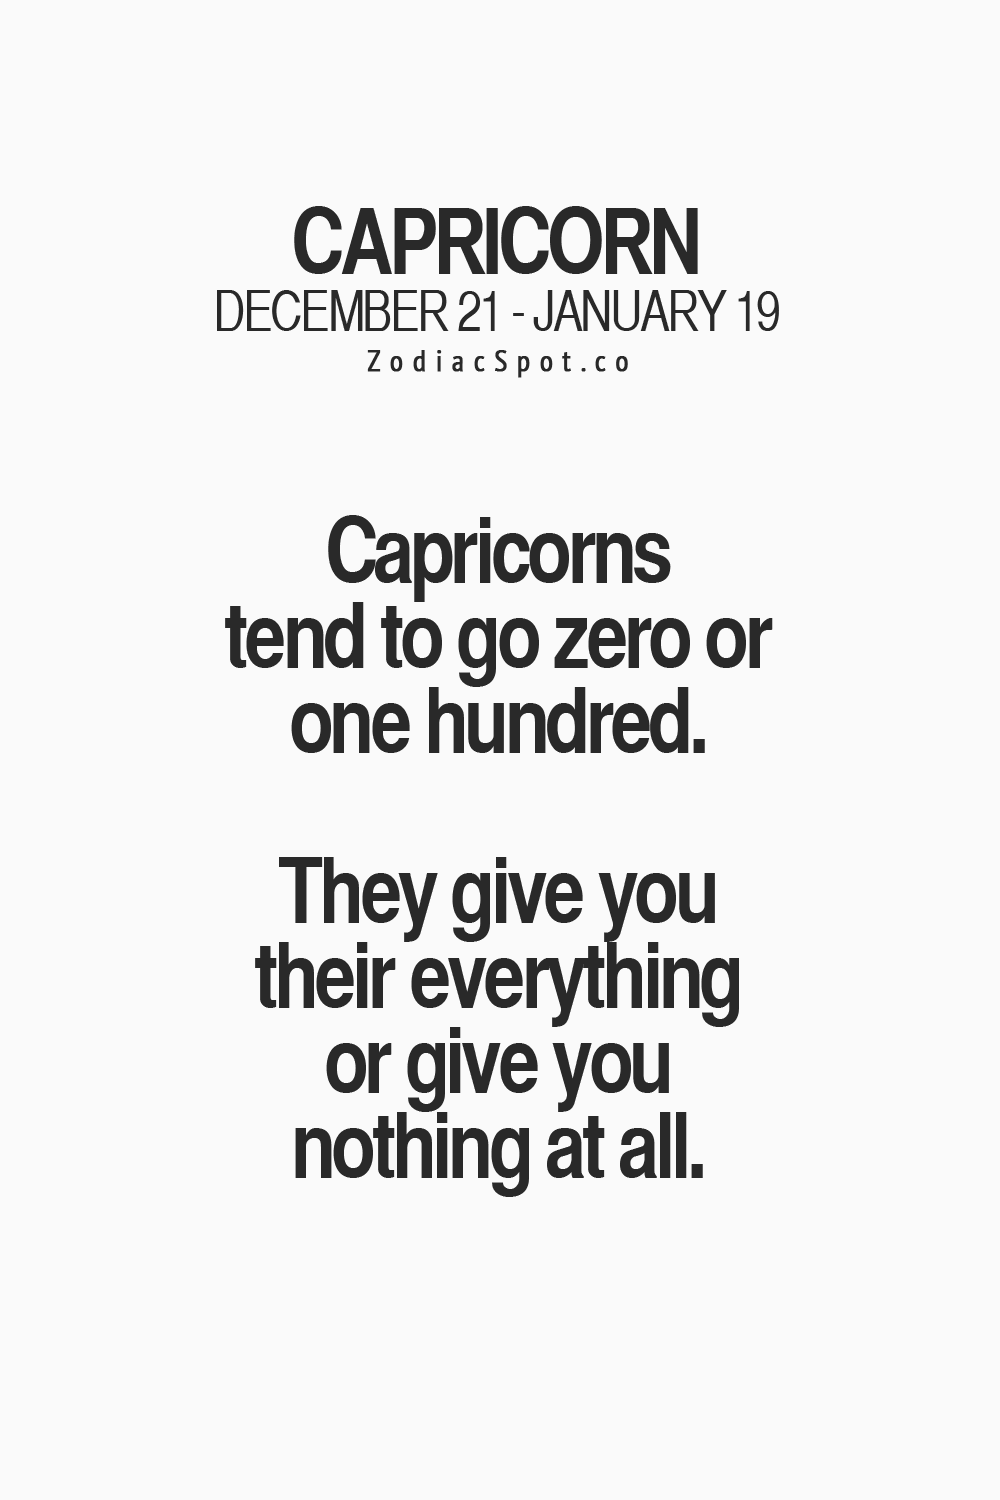 Read more about your zodiac sign here capricorn facts read more about your zodiac sign here biocorpaavc Image collections